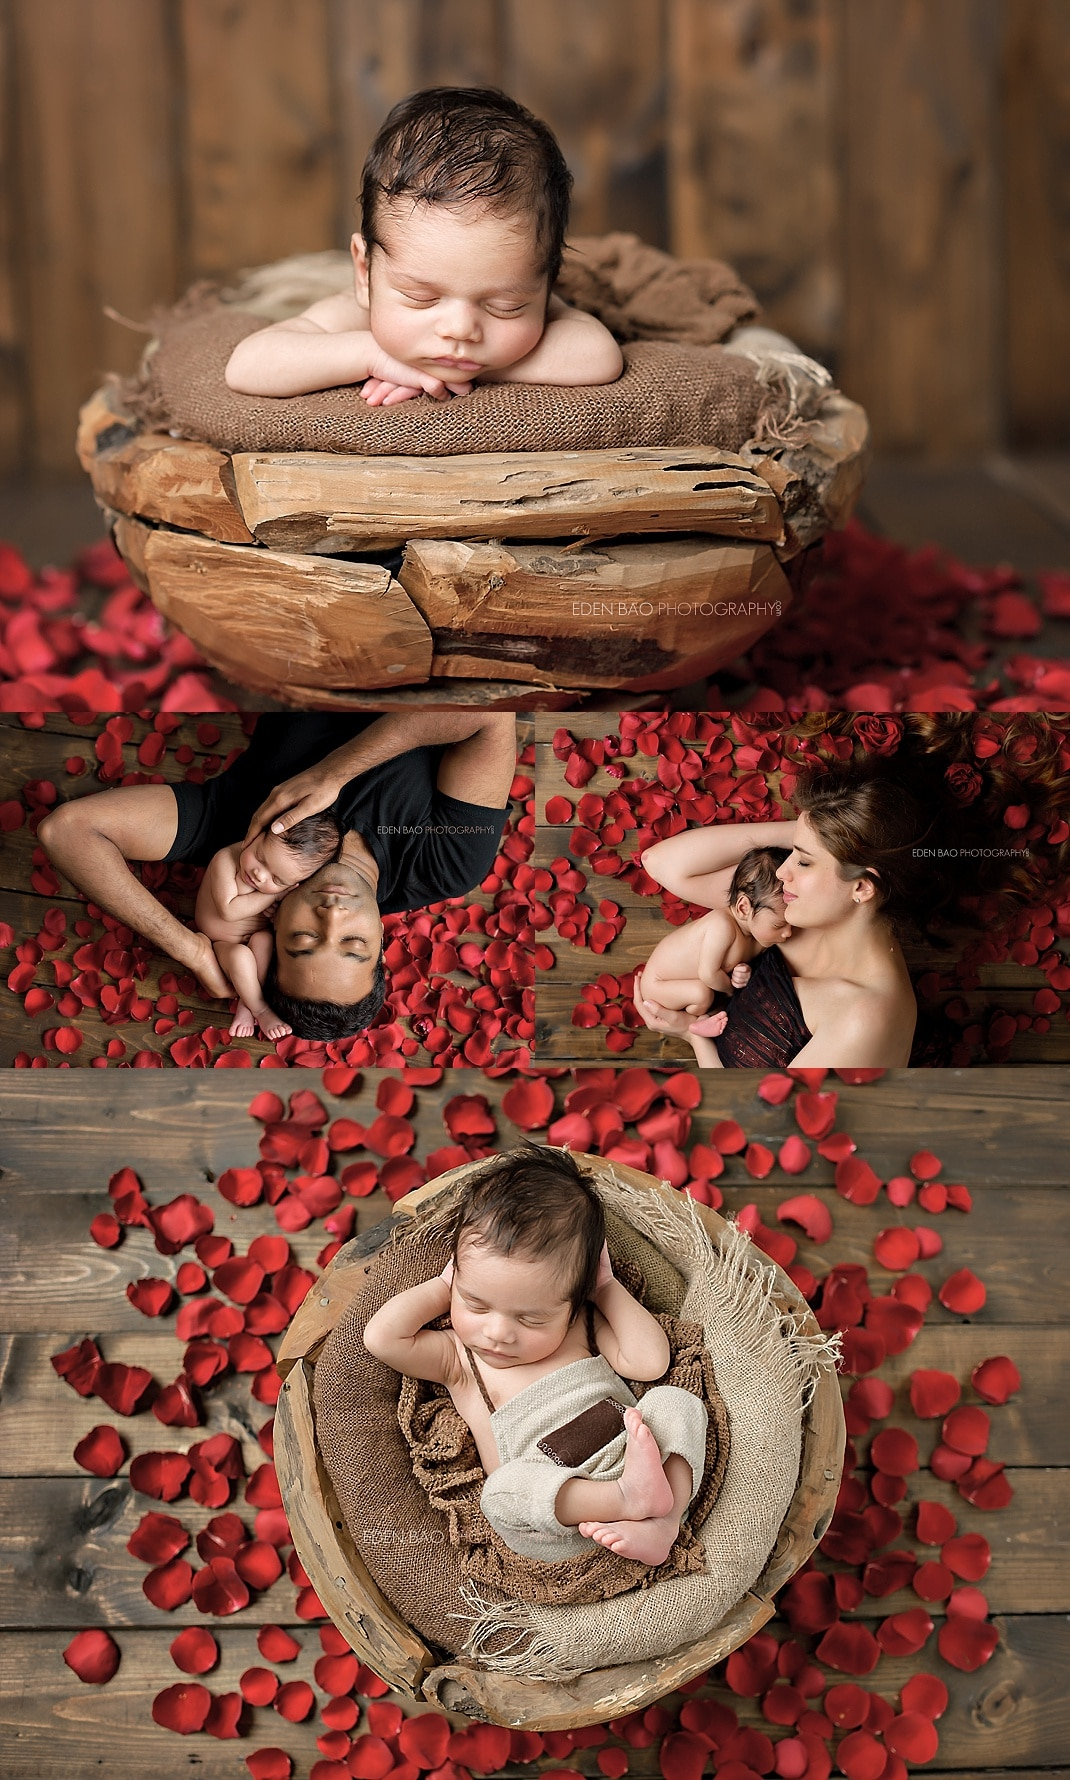 duvall-newborn-photographer-baby-in-basket-with-roses